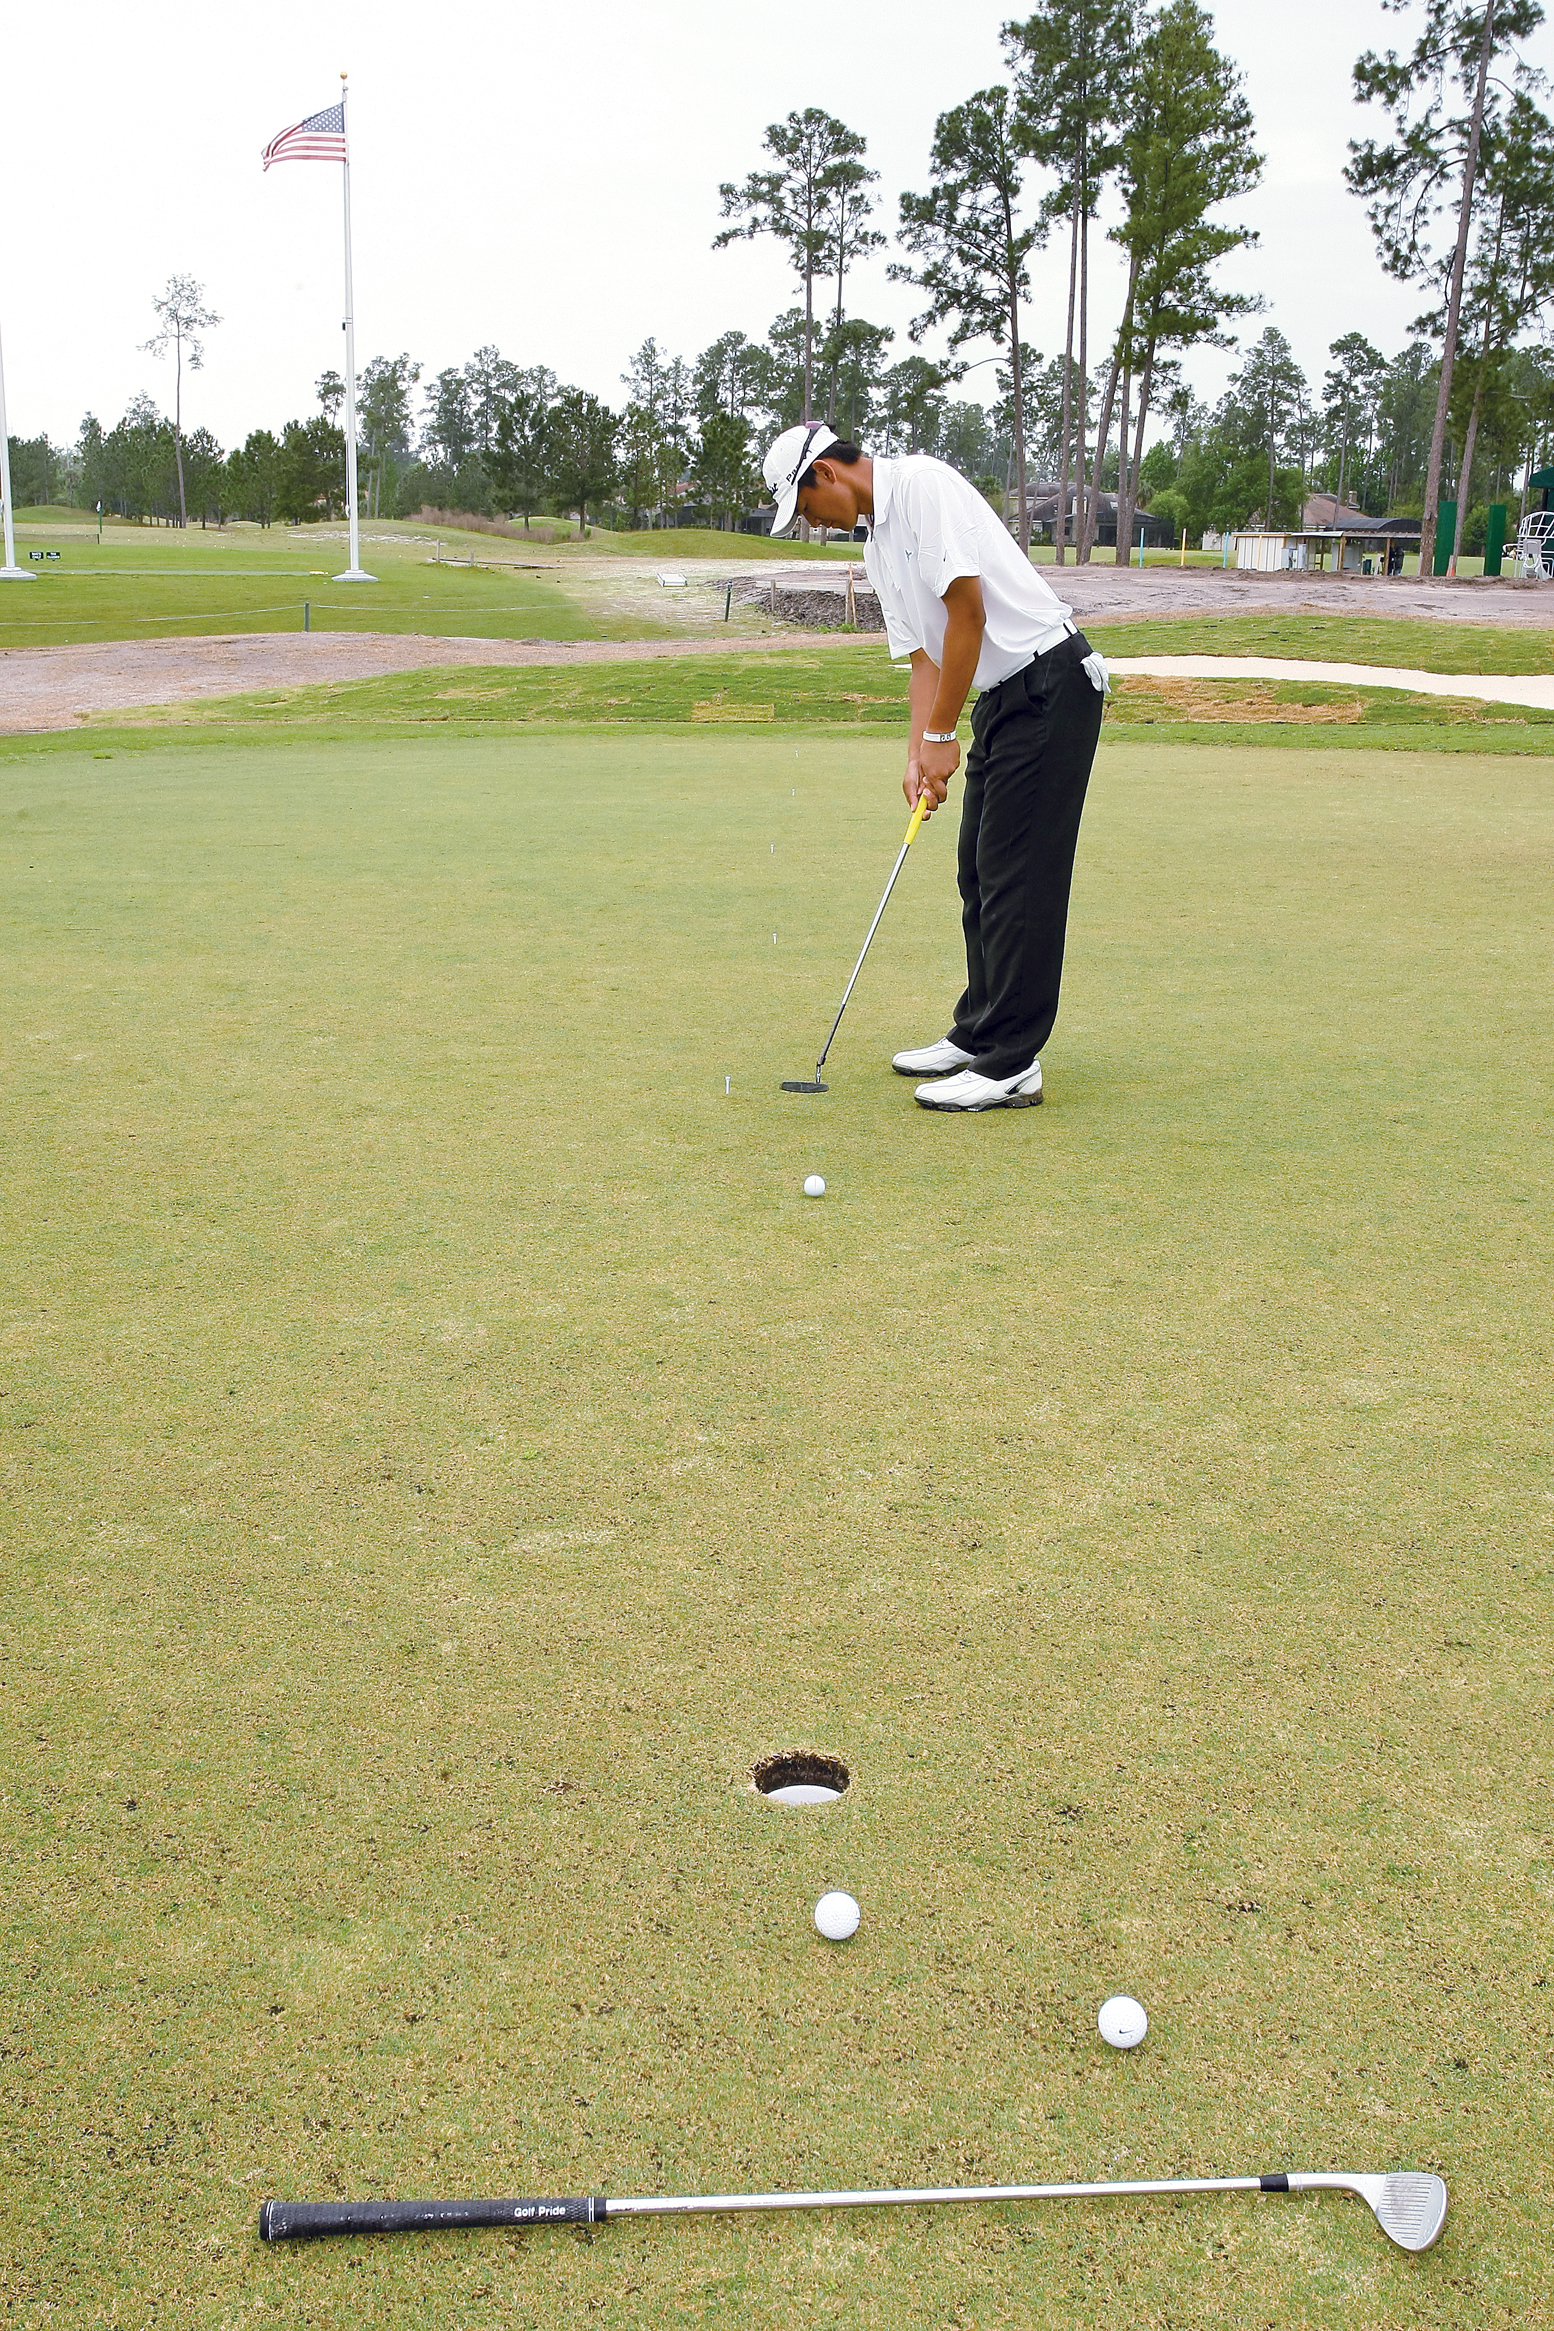 Hak wants his putts to roll past the hole but not to the club.